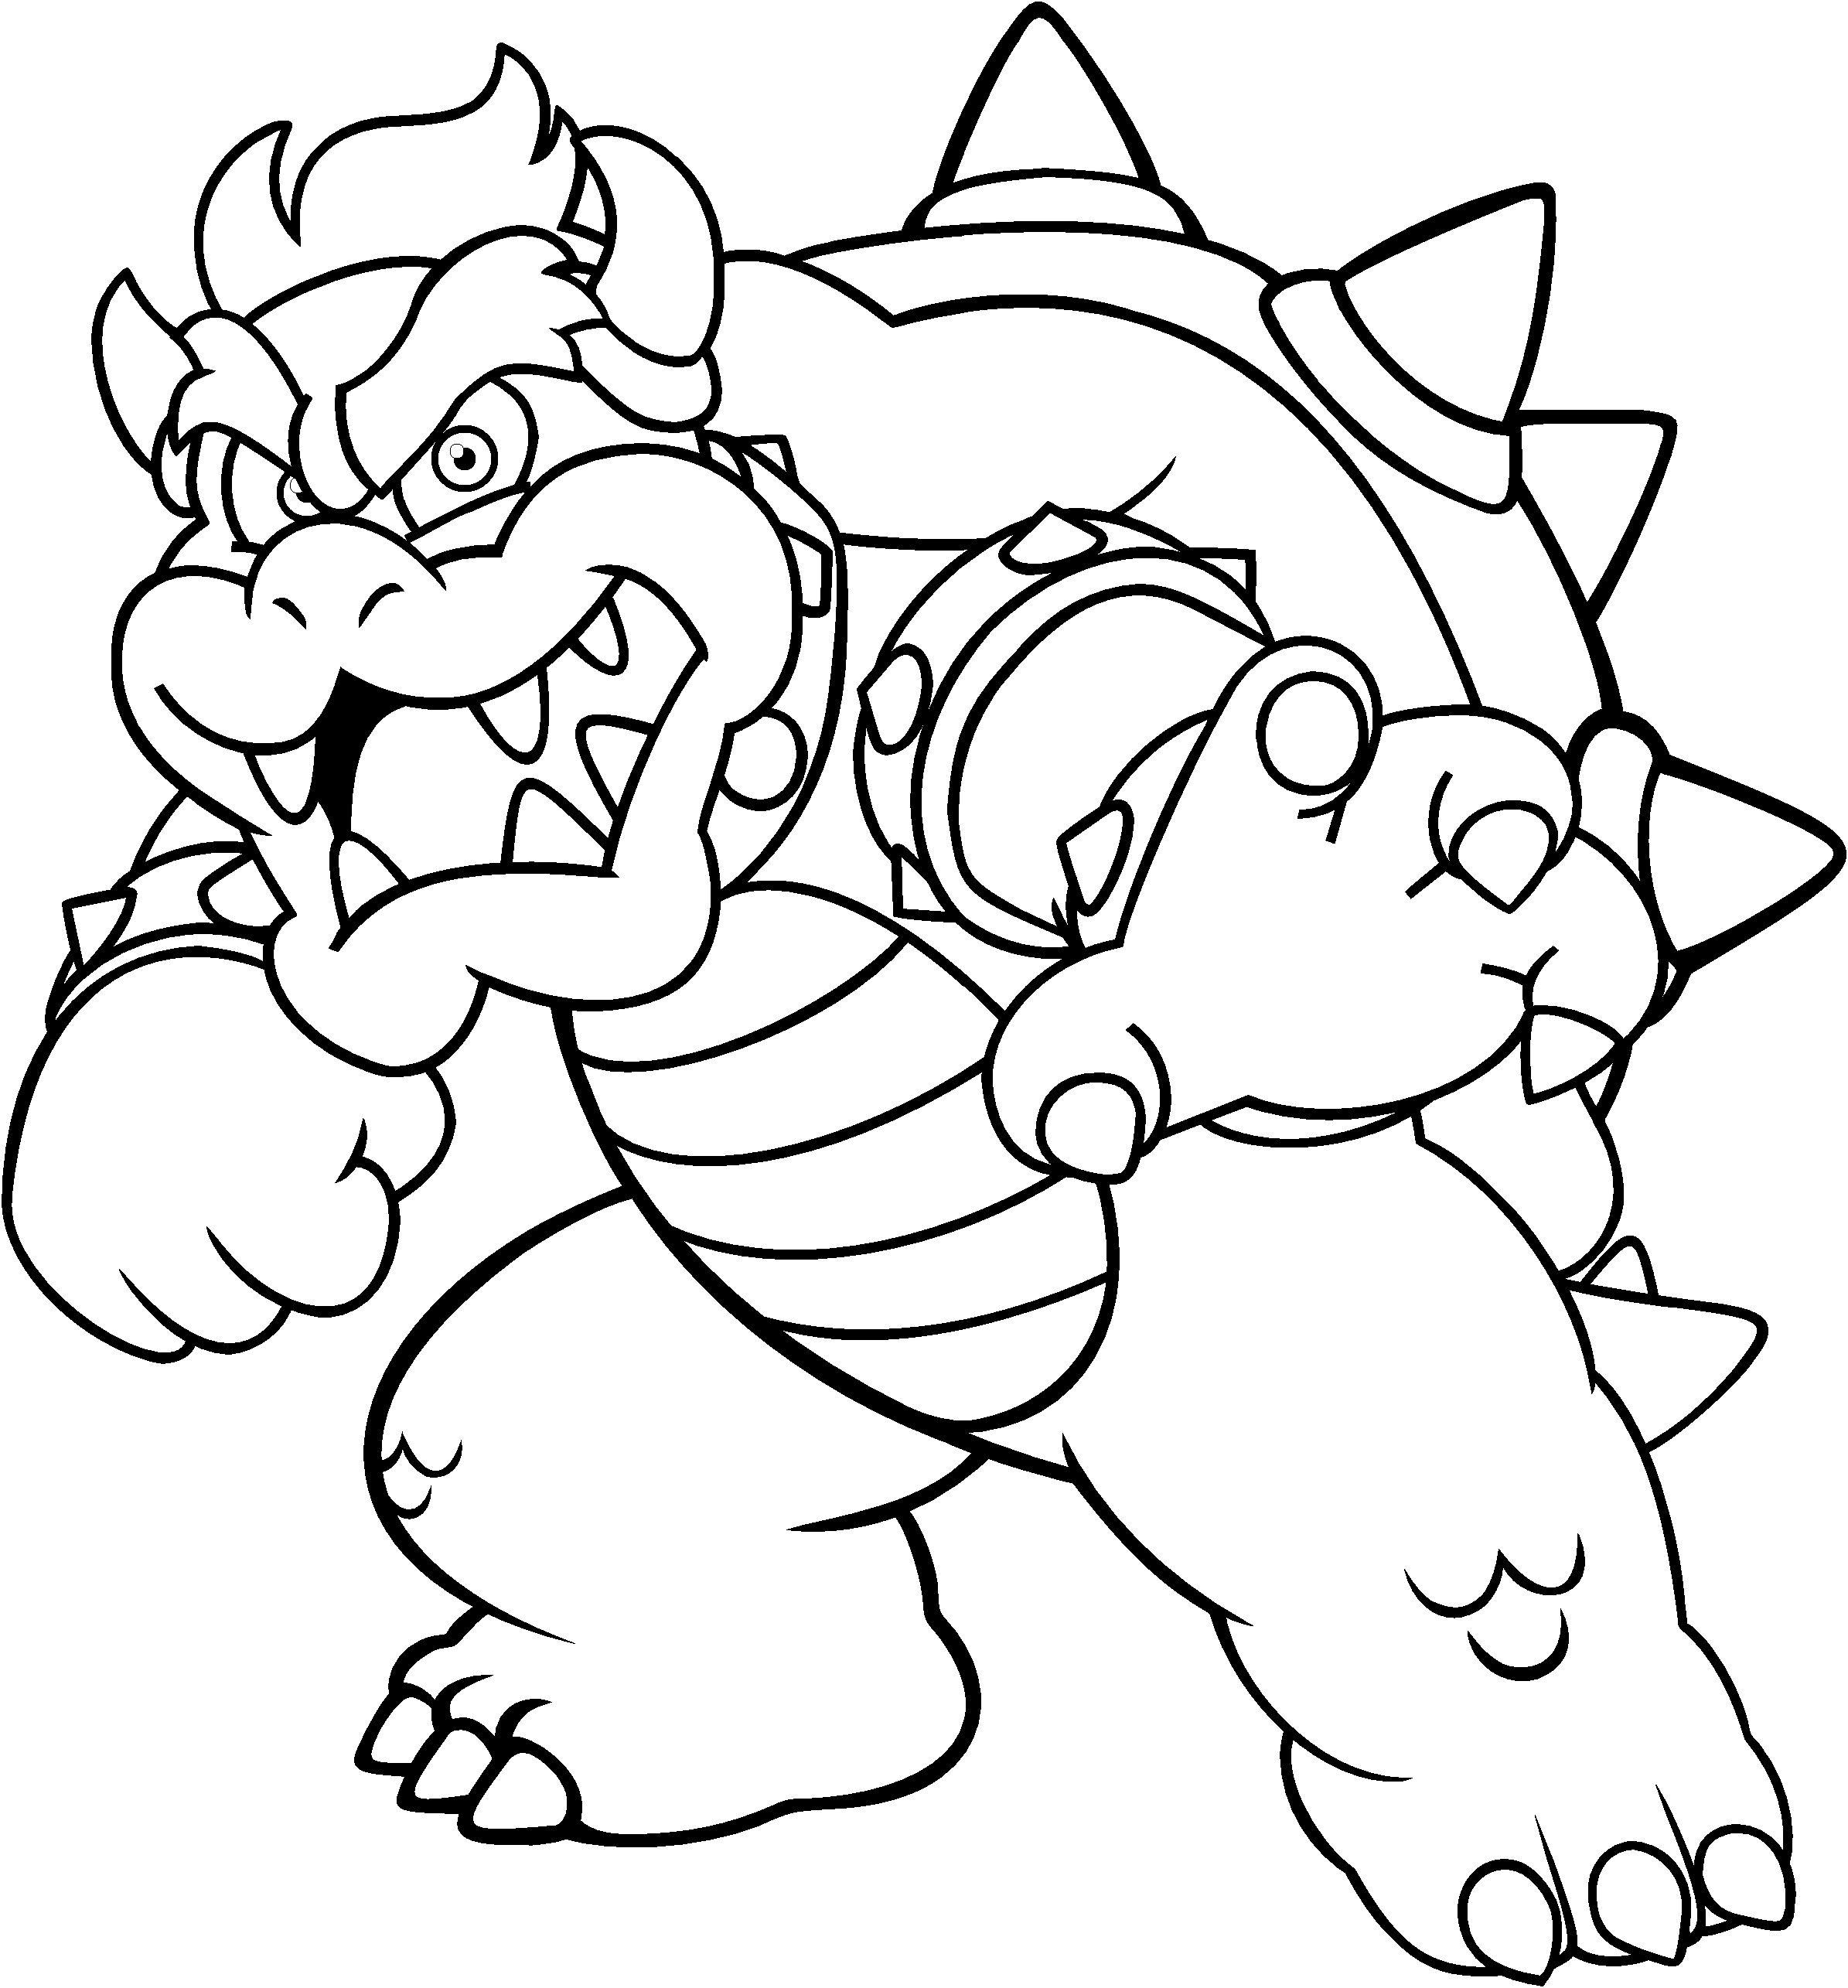 bowser picture bowser coloring pages best coloring pages for kids picture bowser